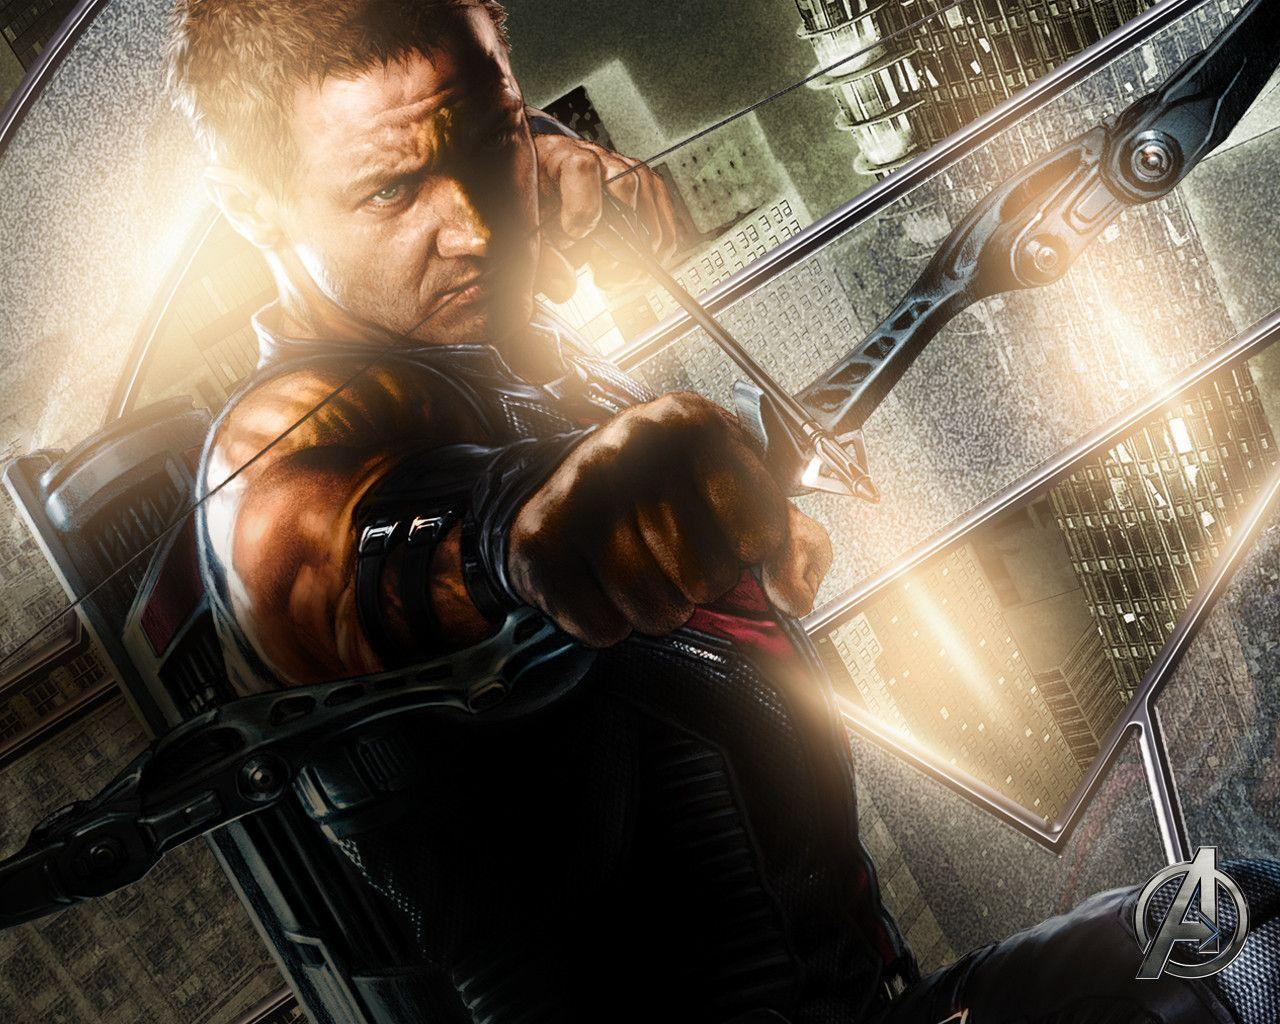 Avengers wallpapers 2 – Hawkeye